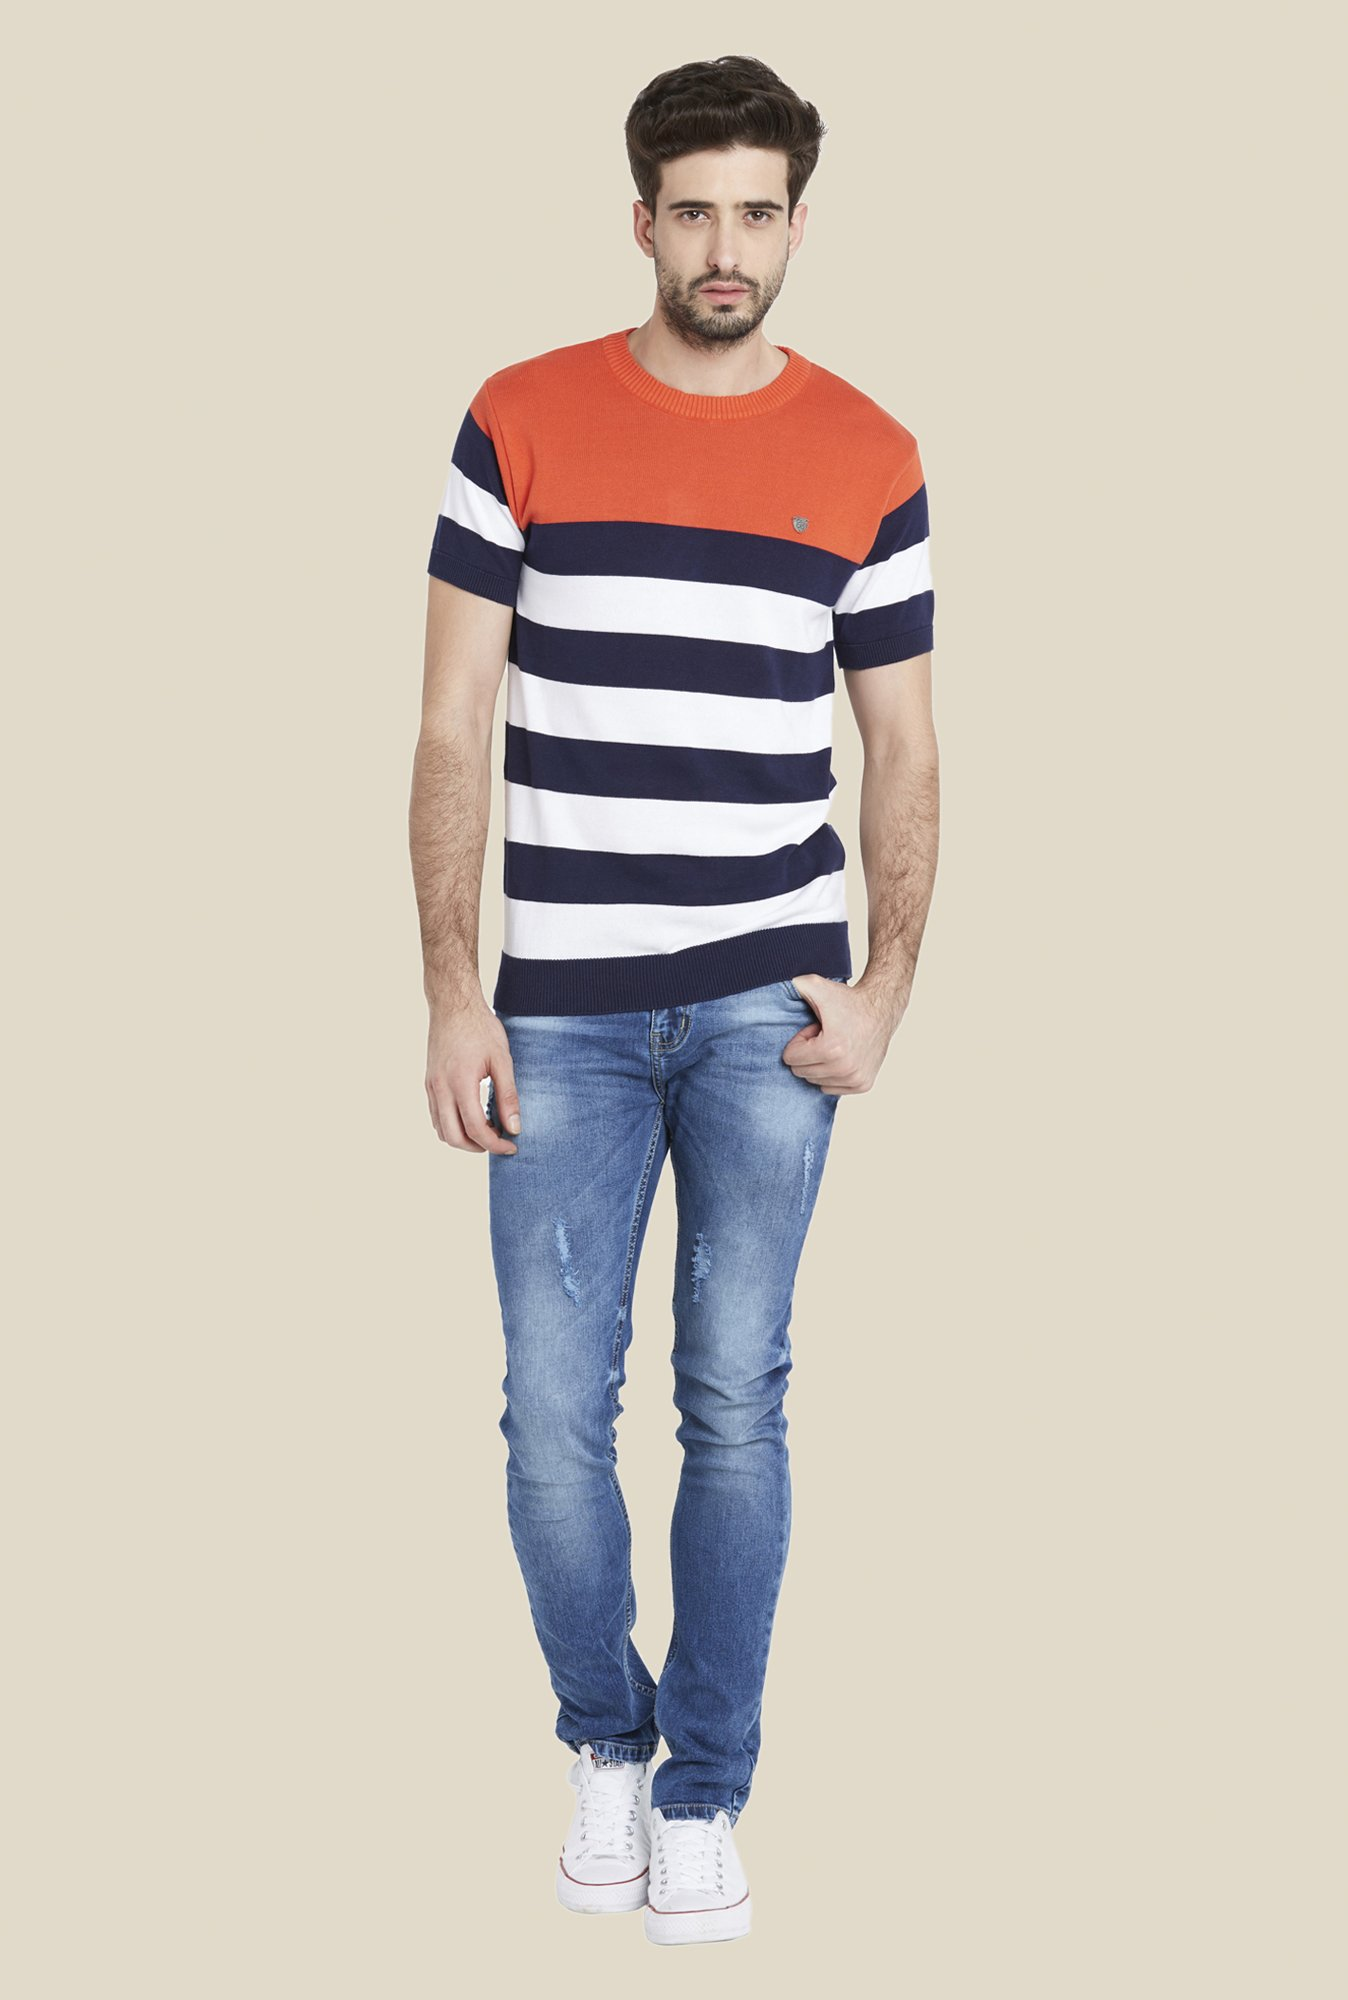 Globus Multicolor Striped Crew T Shirt